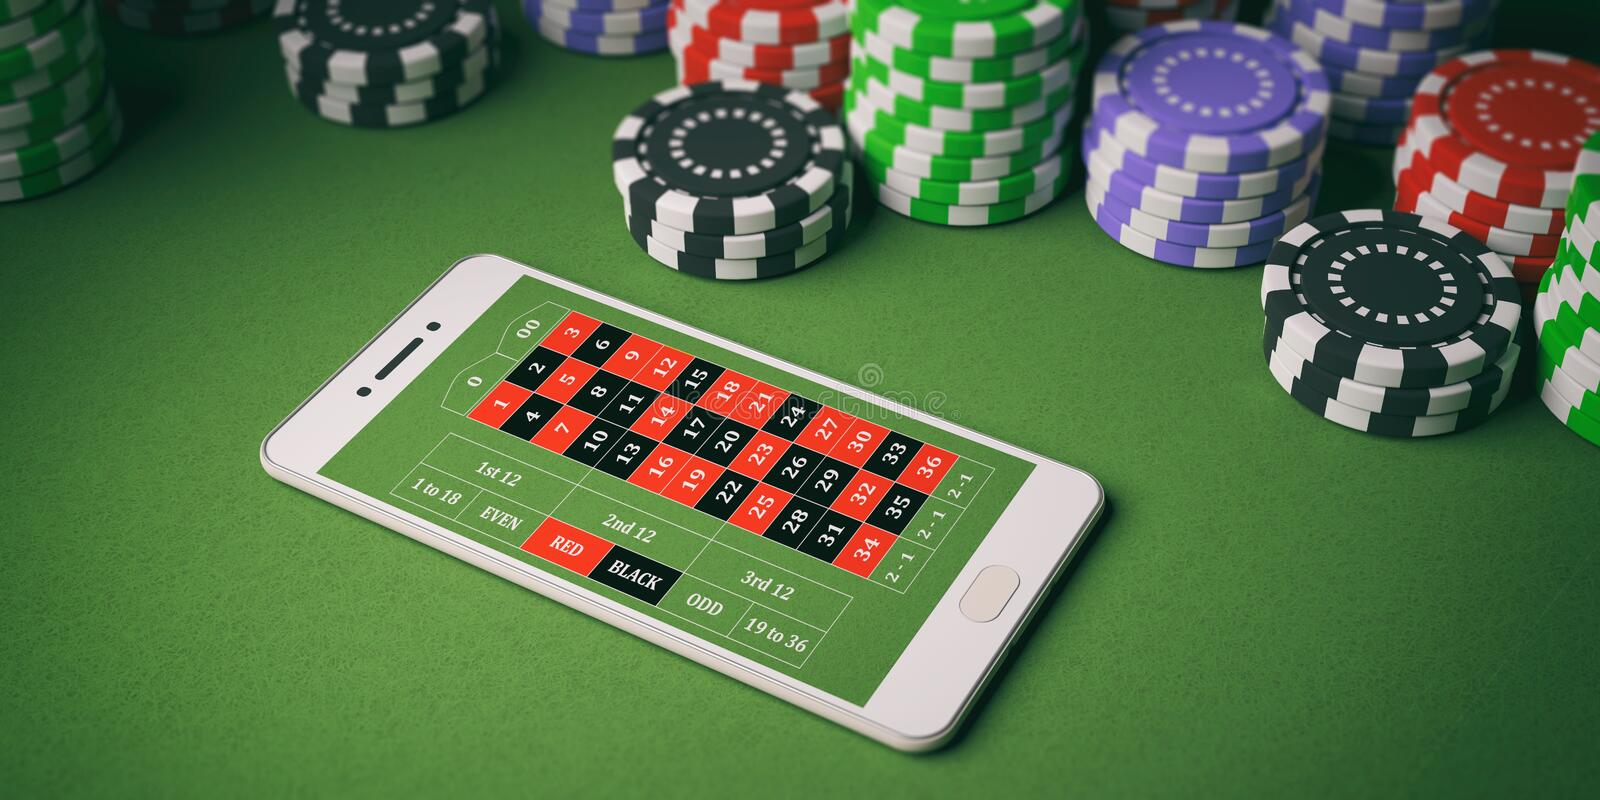 Casino chips and smartphone on green felt. 3d illustration. Online casino concept. Chips and smartphone on green felt background. 3d illustration stock illustration